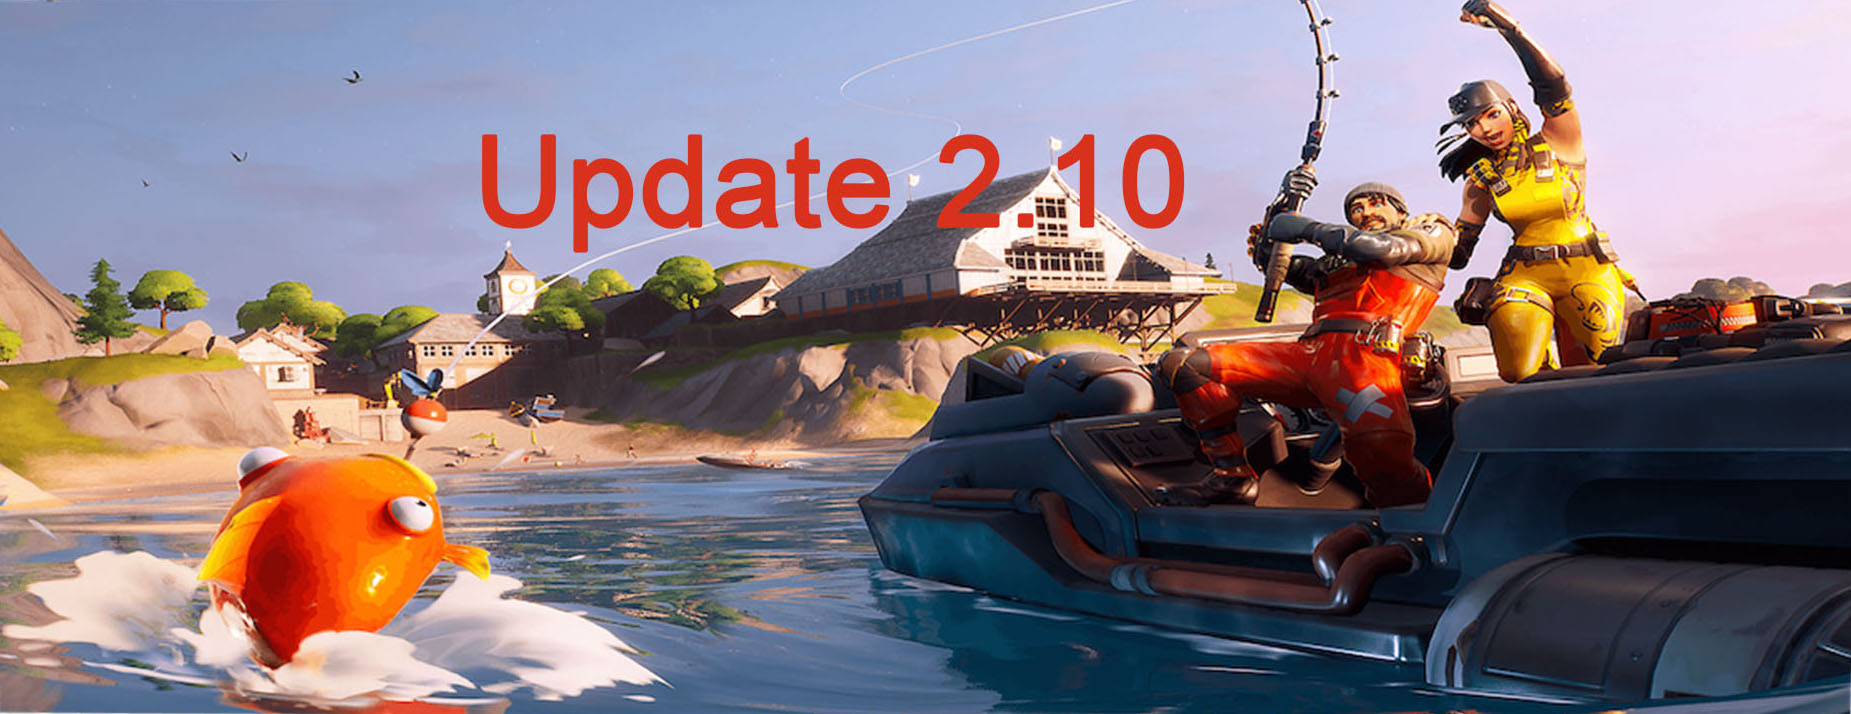 Fortnite: Update 2.10 bringt Fortnite Kapitel 2 – Deutsche Patch Notes